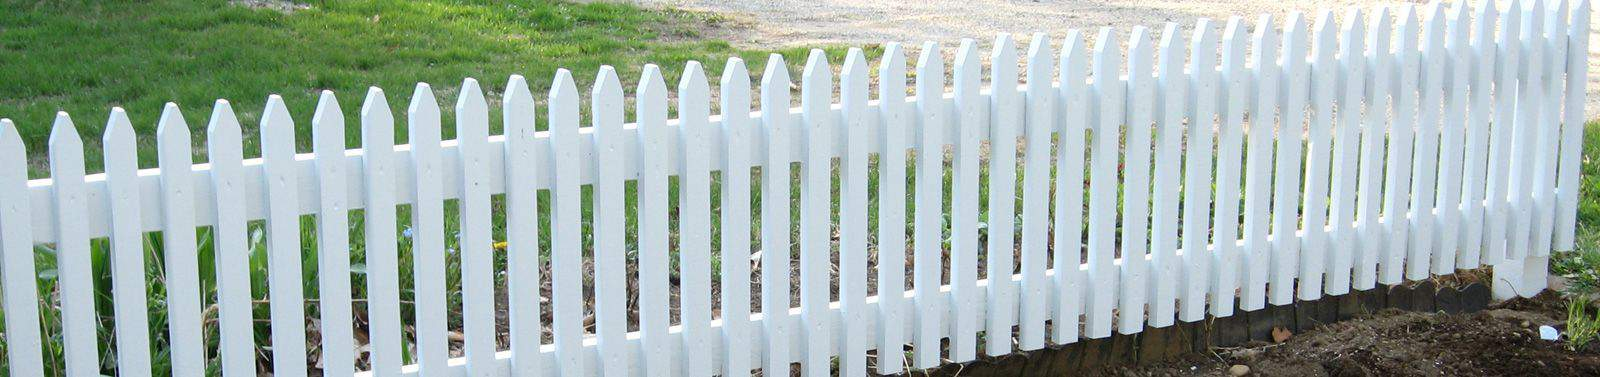 Commercial Fence Installation Rochester Ny Wood Metal